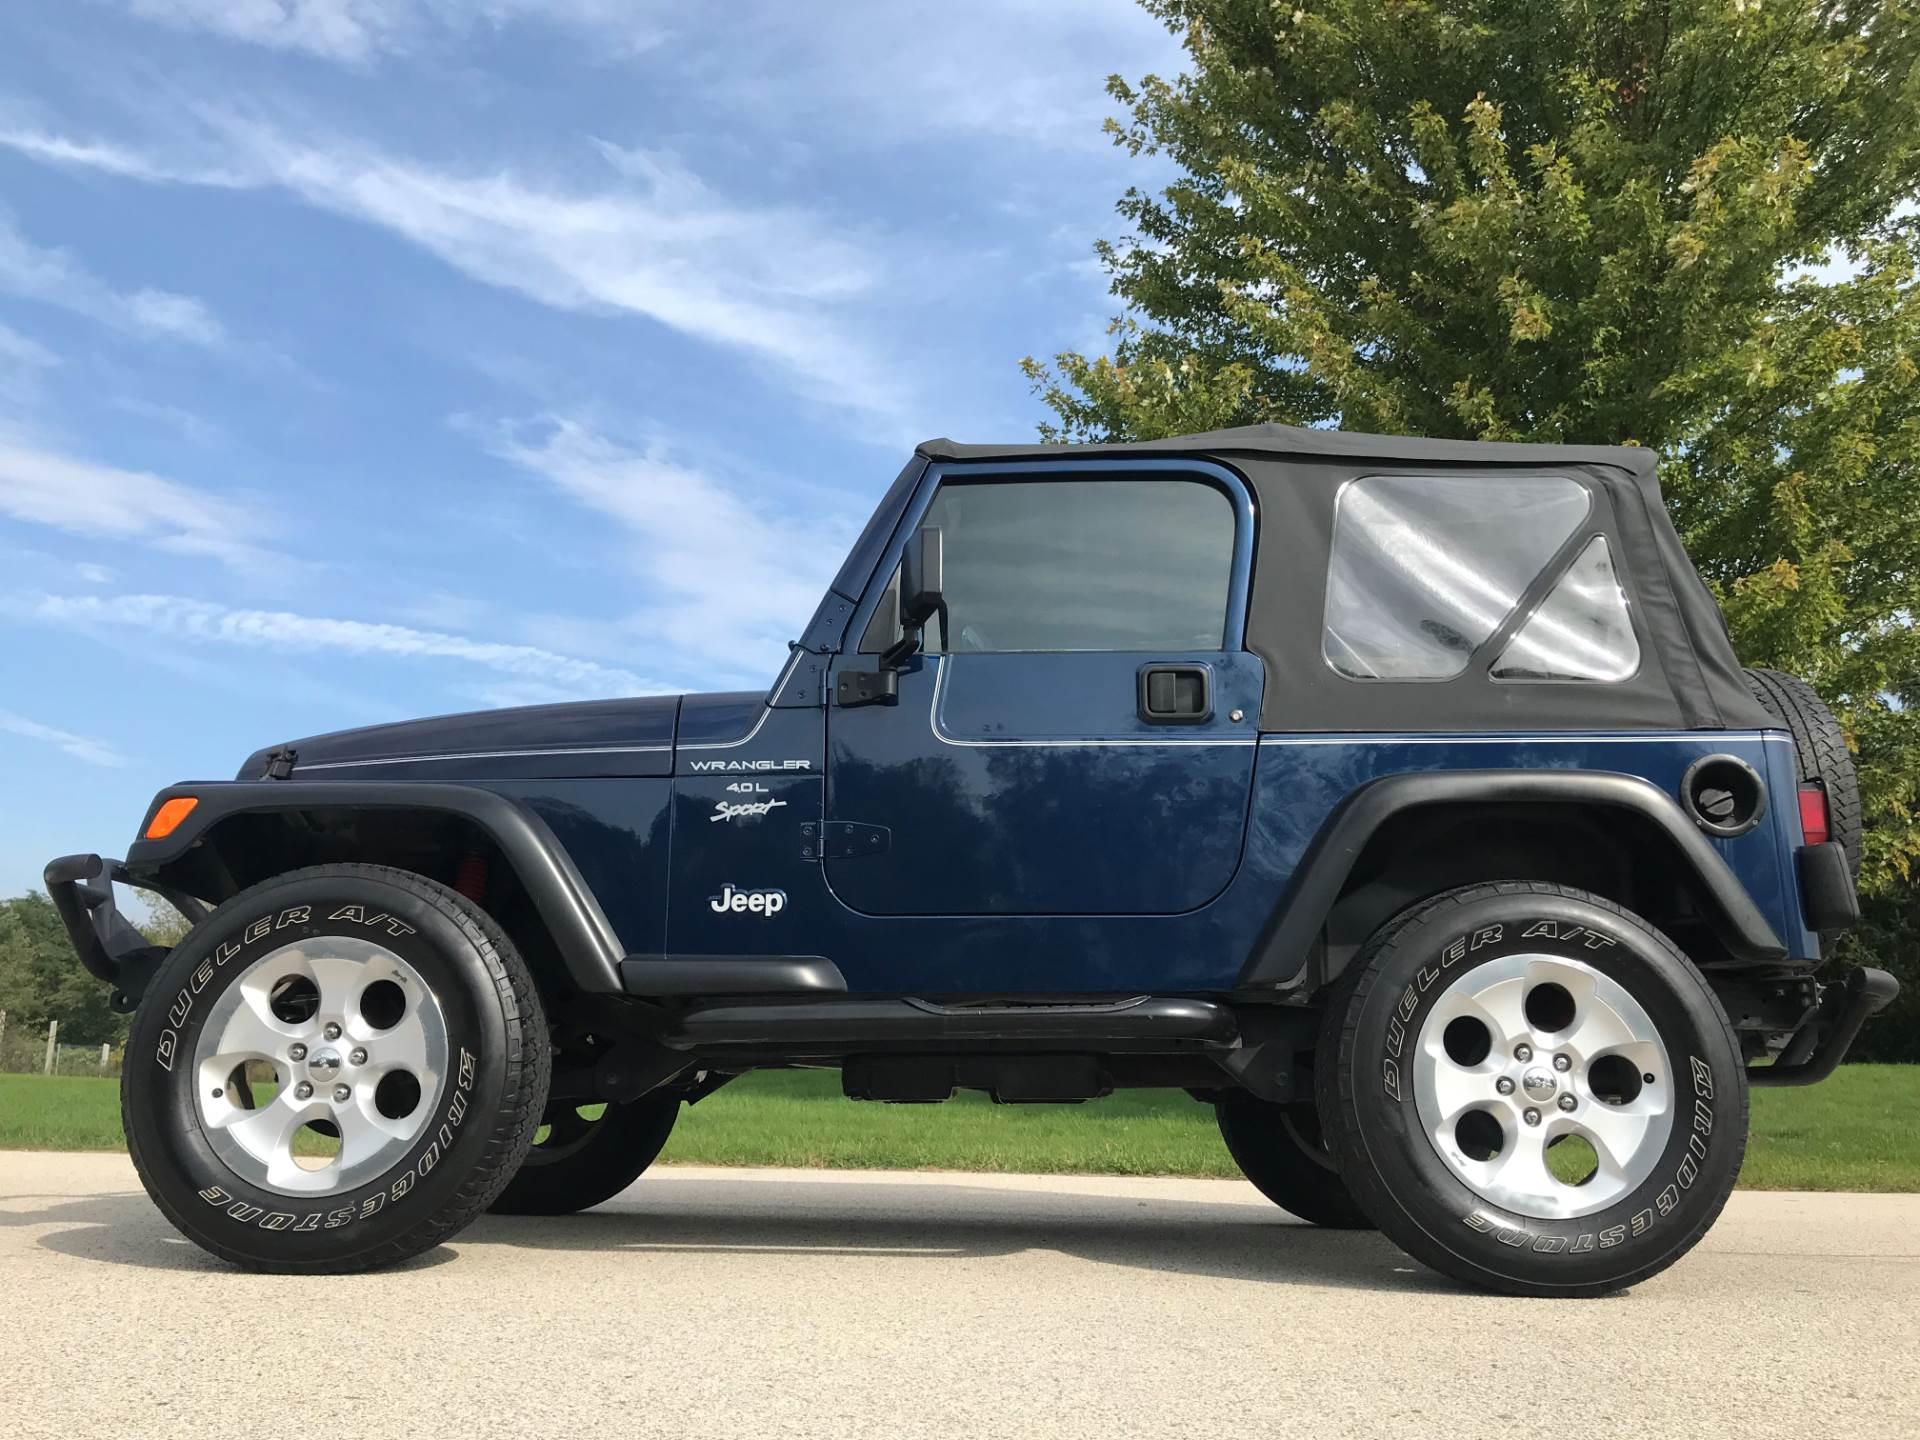 2000 Jeep Wrangler Sport 2dr 4WD SUV in Big Bend, Wisconsin - Photo 41